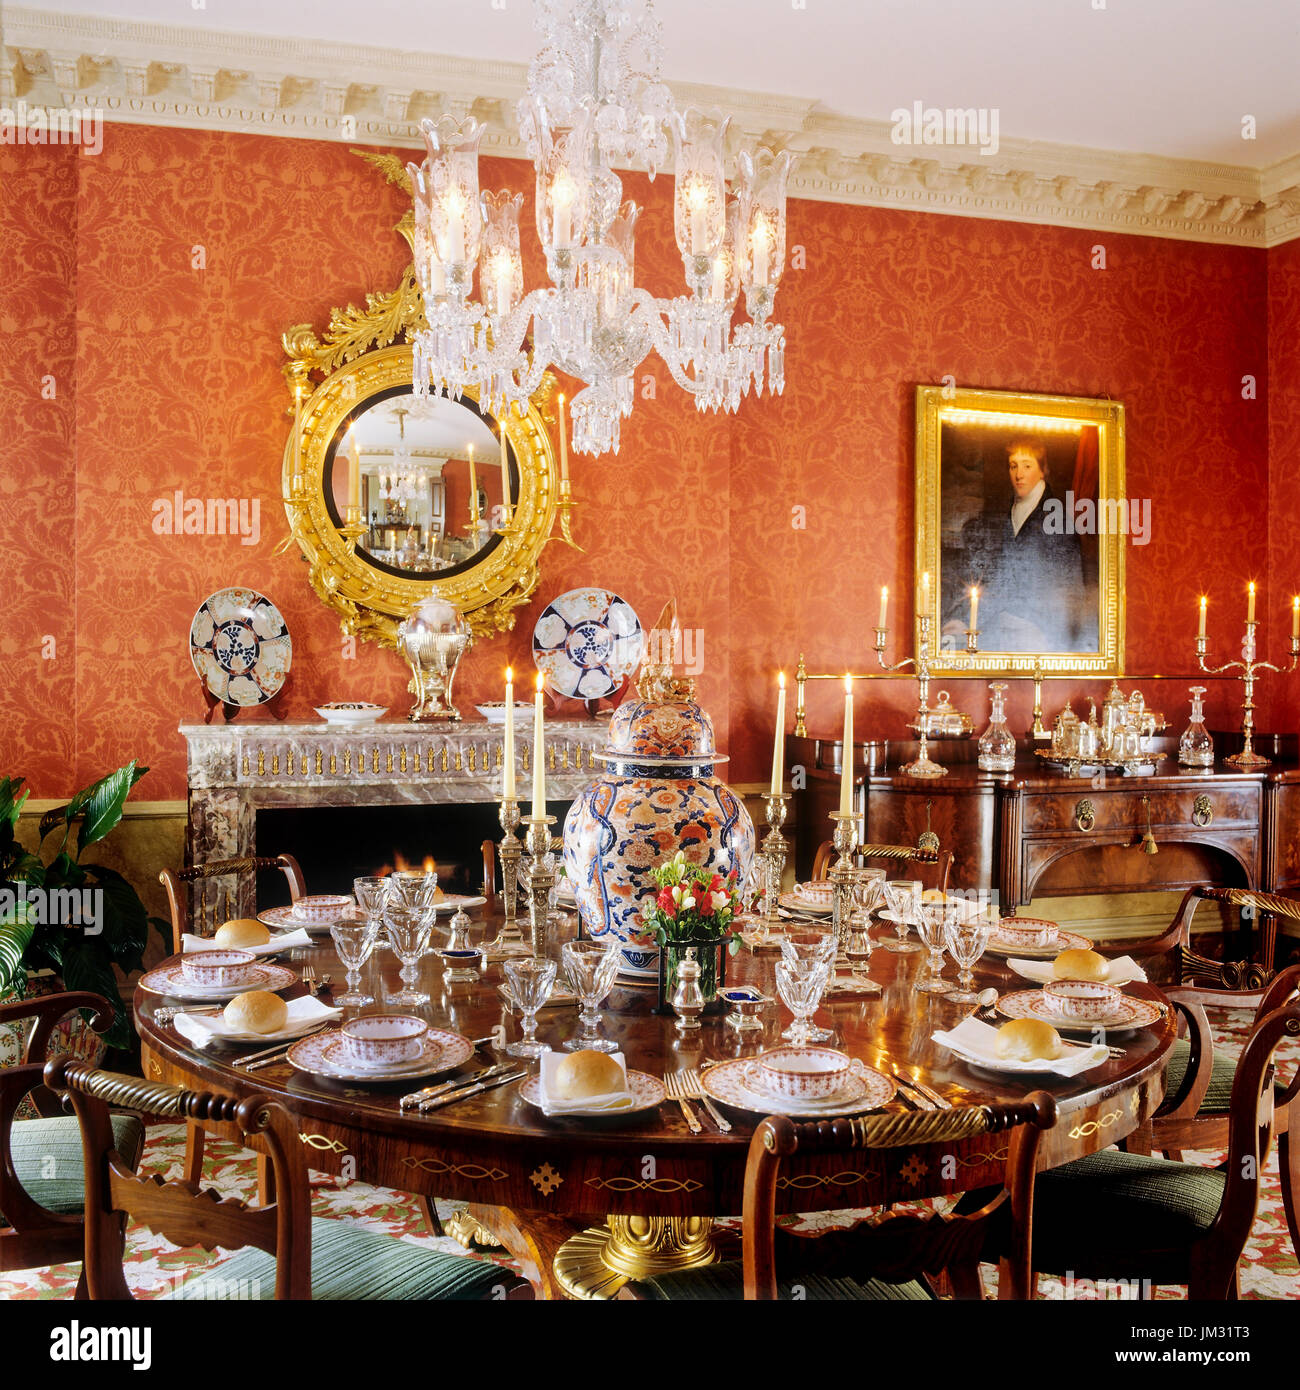 Large Victorian Dining Room: Victorian Dining Room Stock Photos & Victorian Dining Room